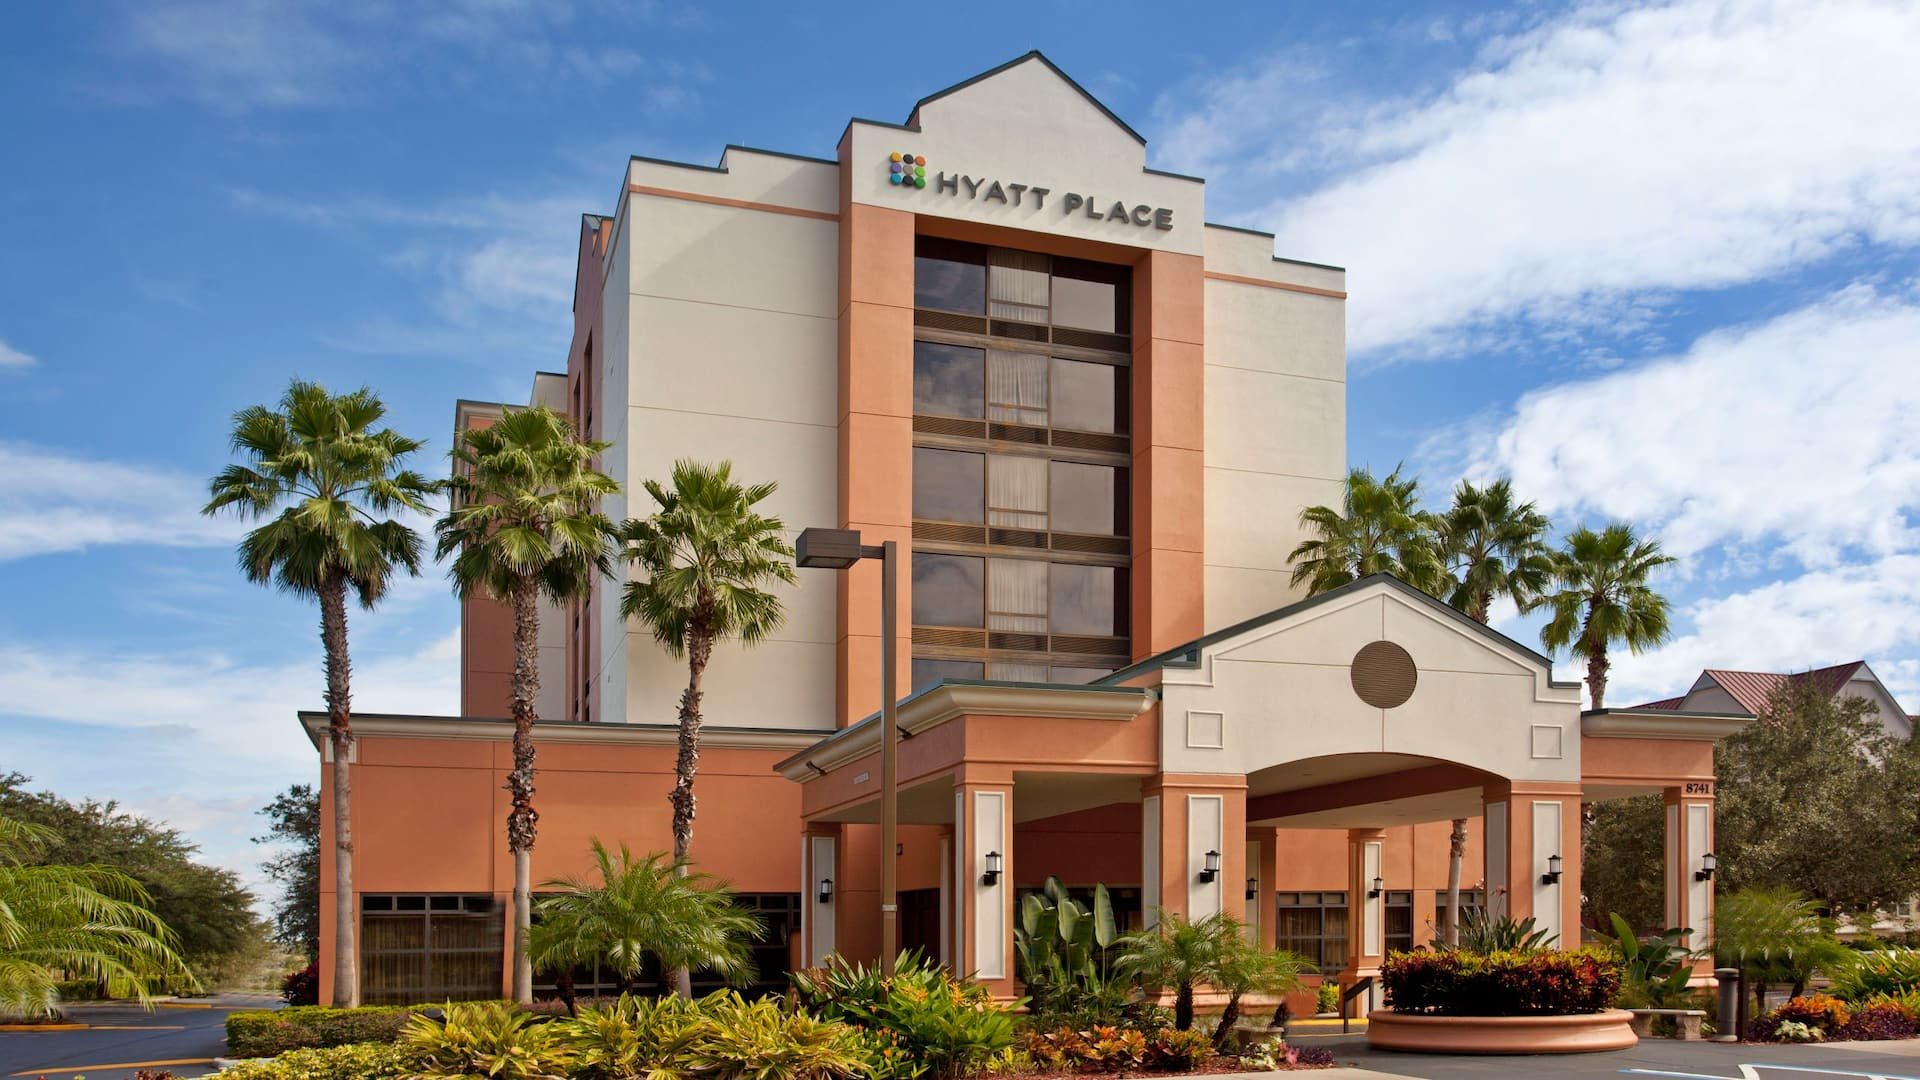 Hyatt Place Orlando Convention Center Parking and Transport